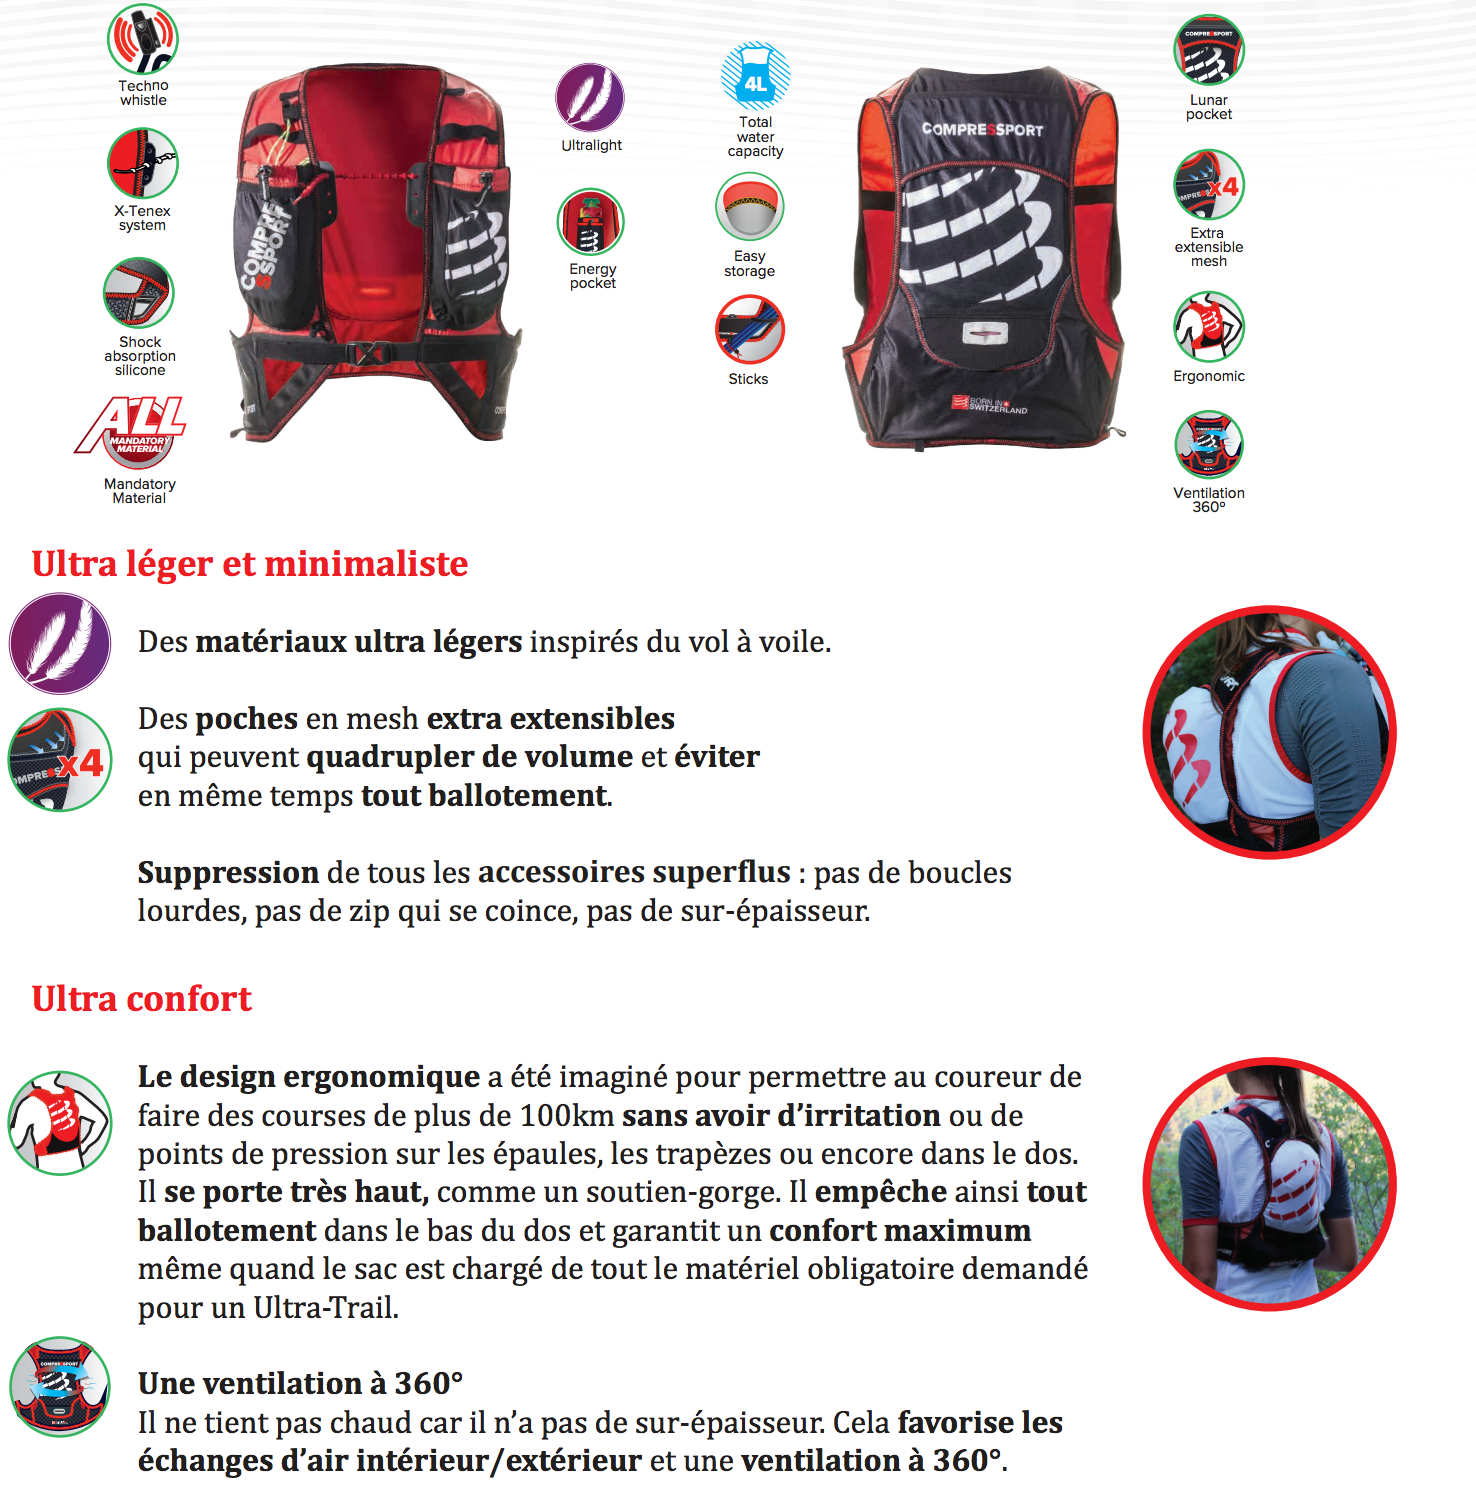 ULTRUN 140G PACK Le premier sac de trail COMPRESSPORT® L'ultra minimaliste pour ultra-longues distances